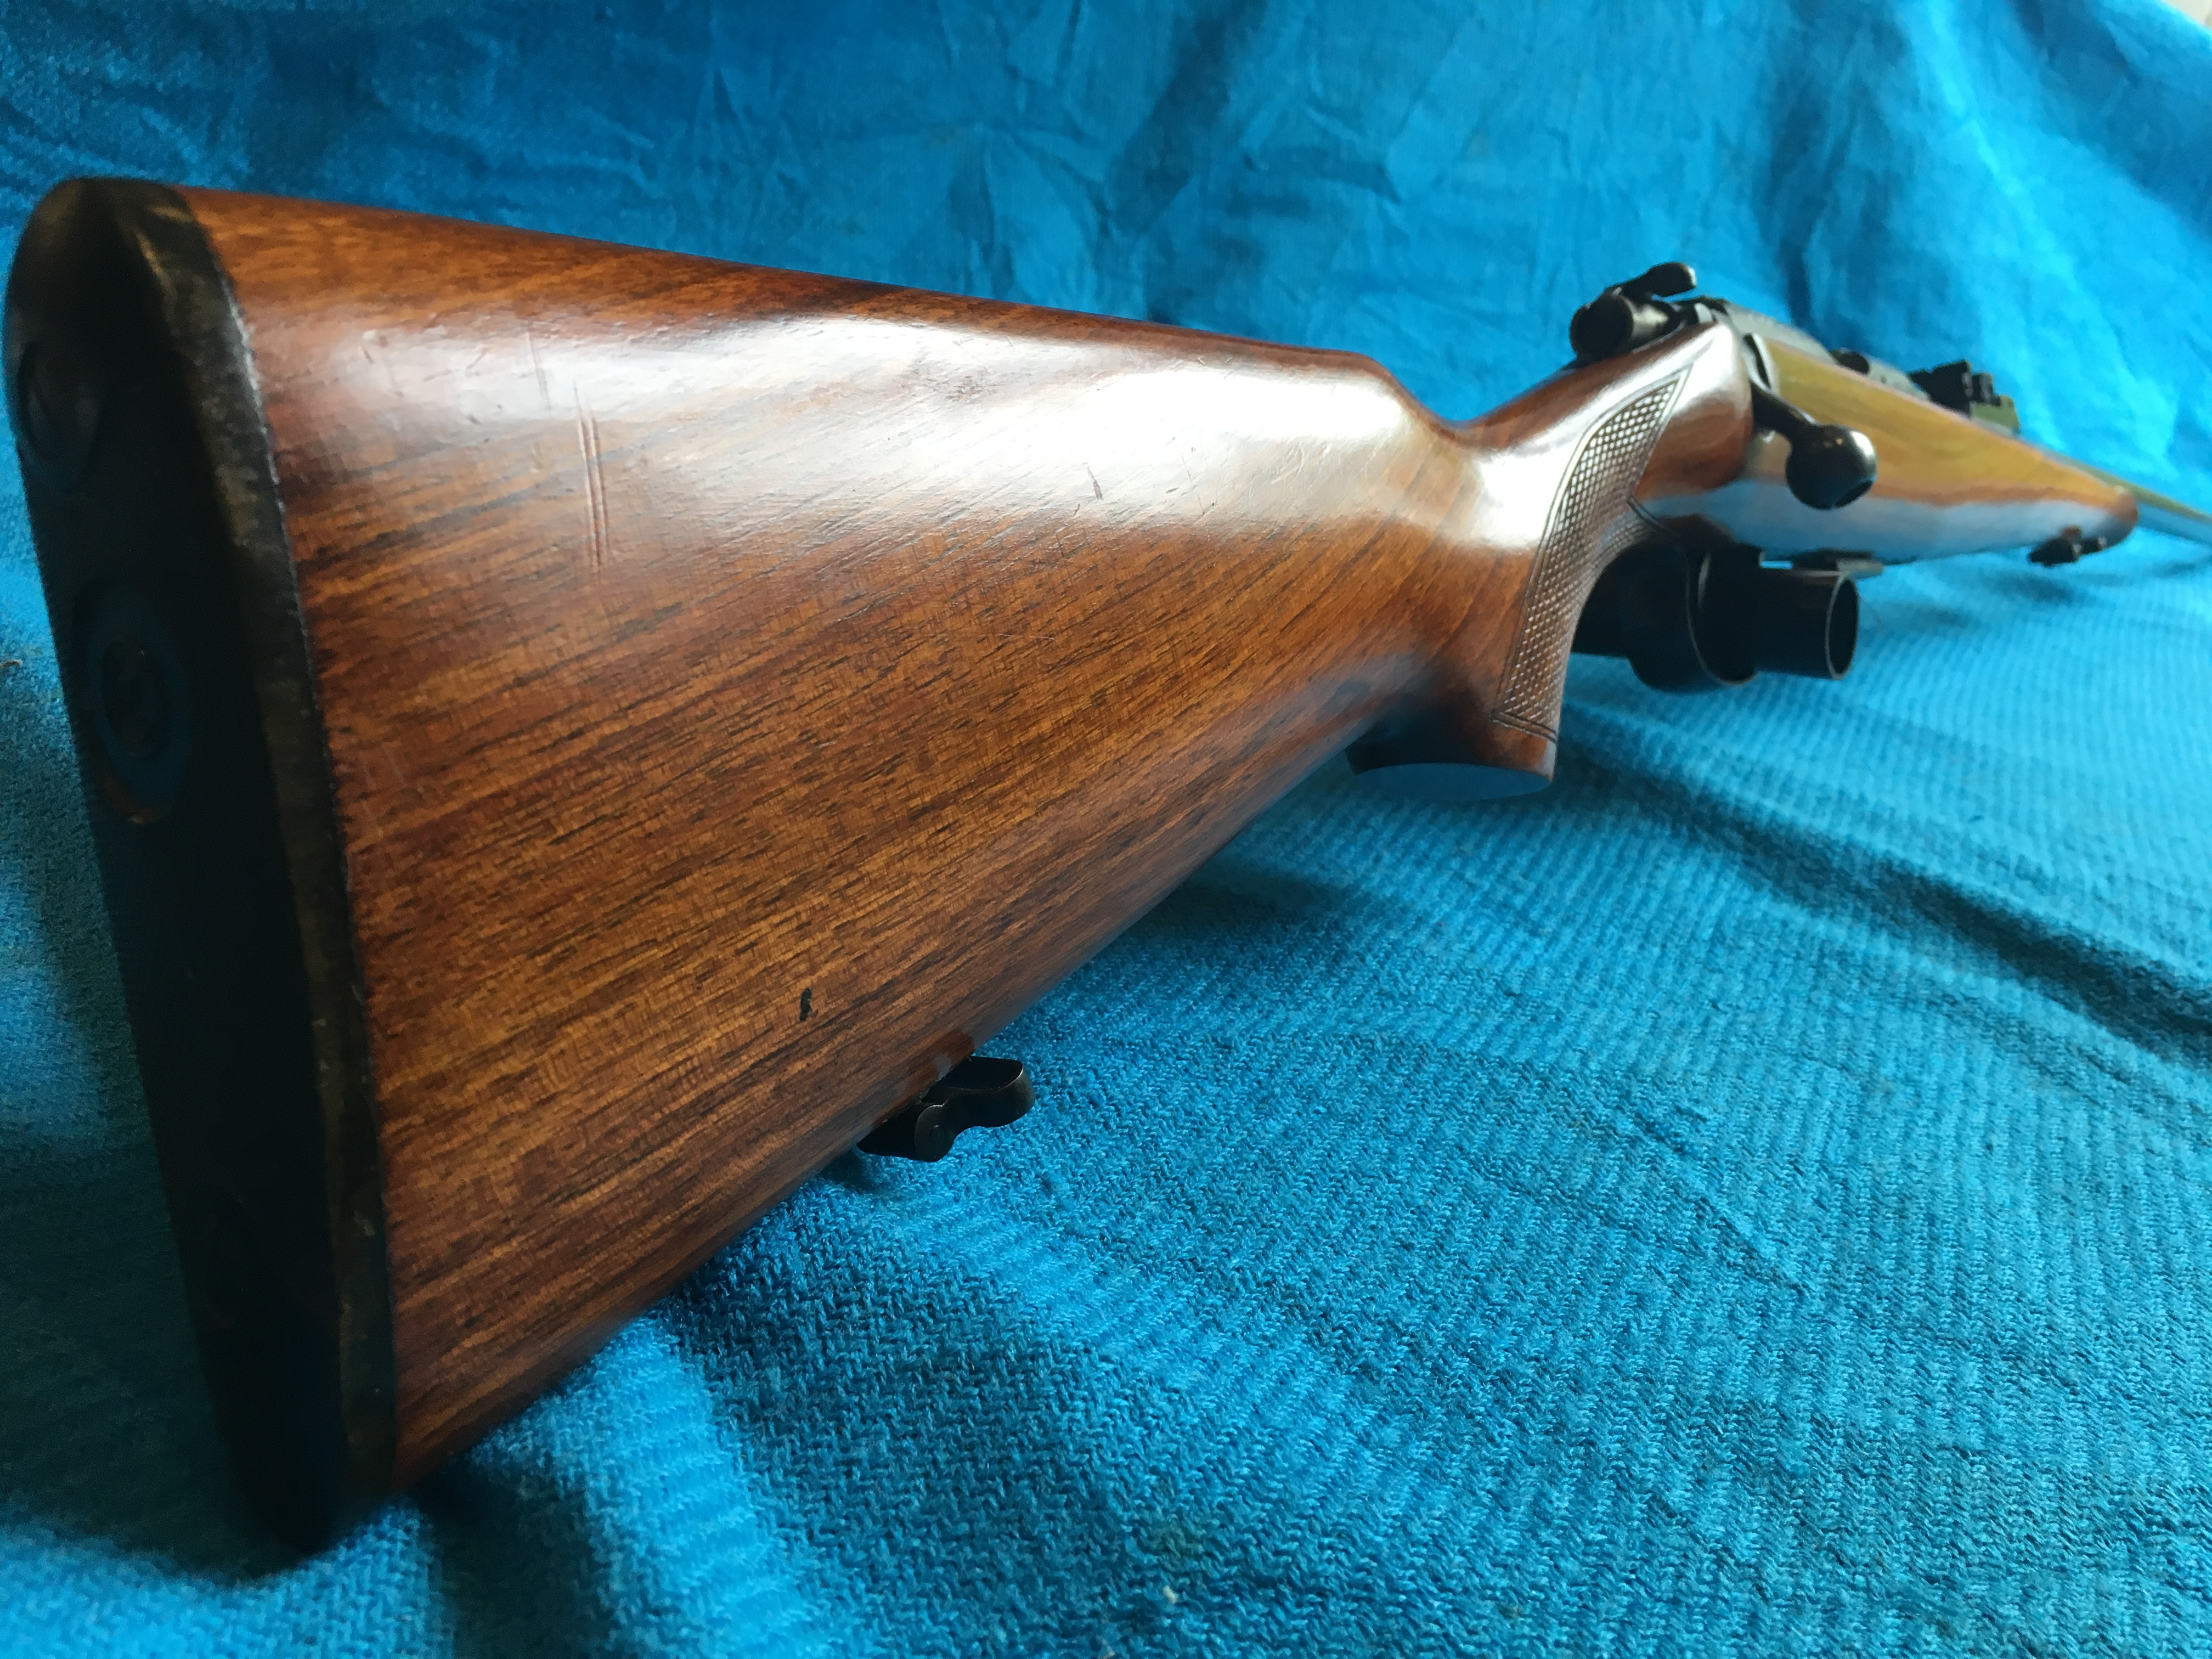 BRNO Model 2  22lr rifle complete with open sights